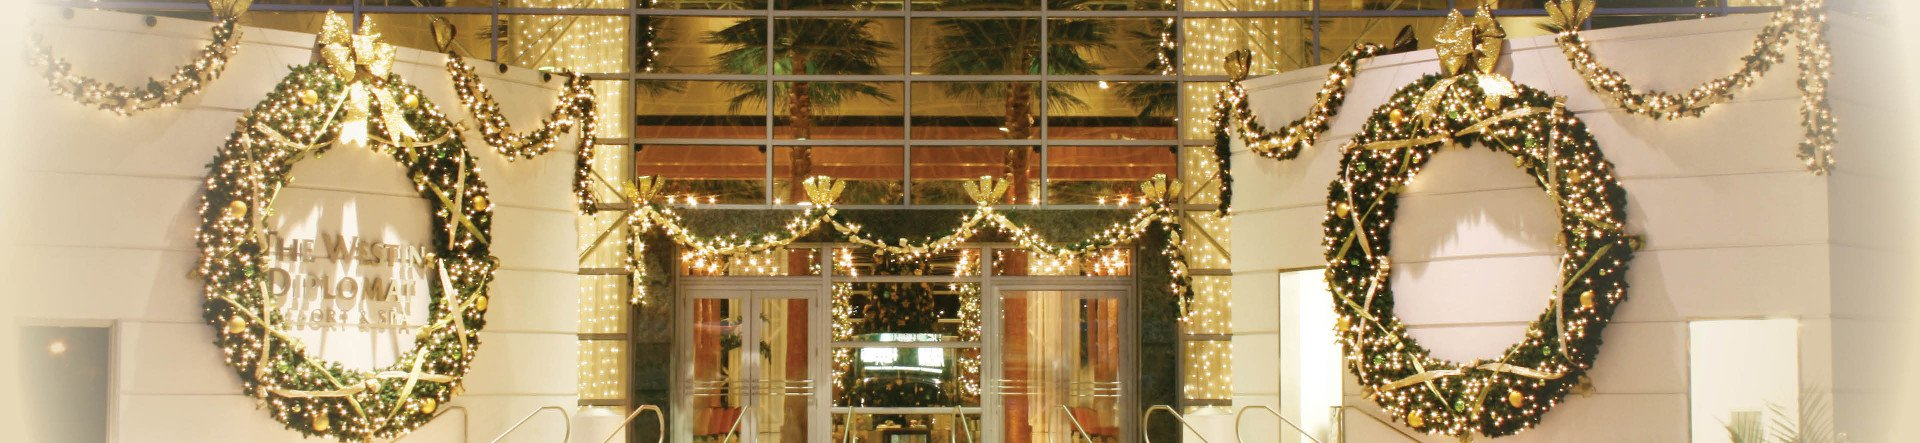 Westin Diplomat with large wreaths and lights